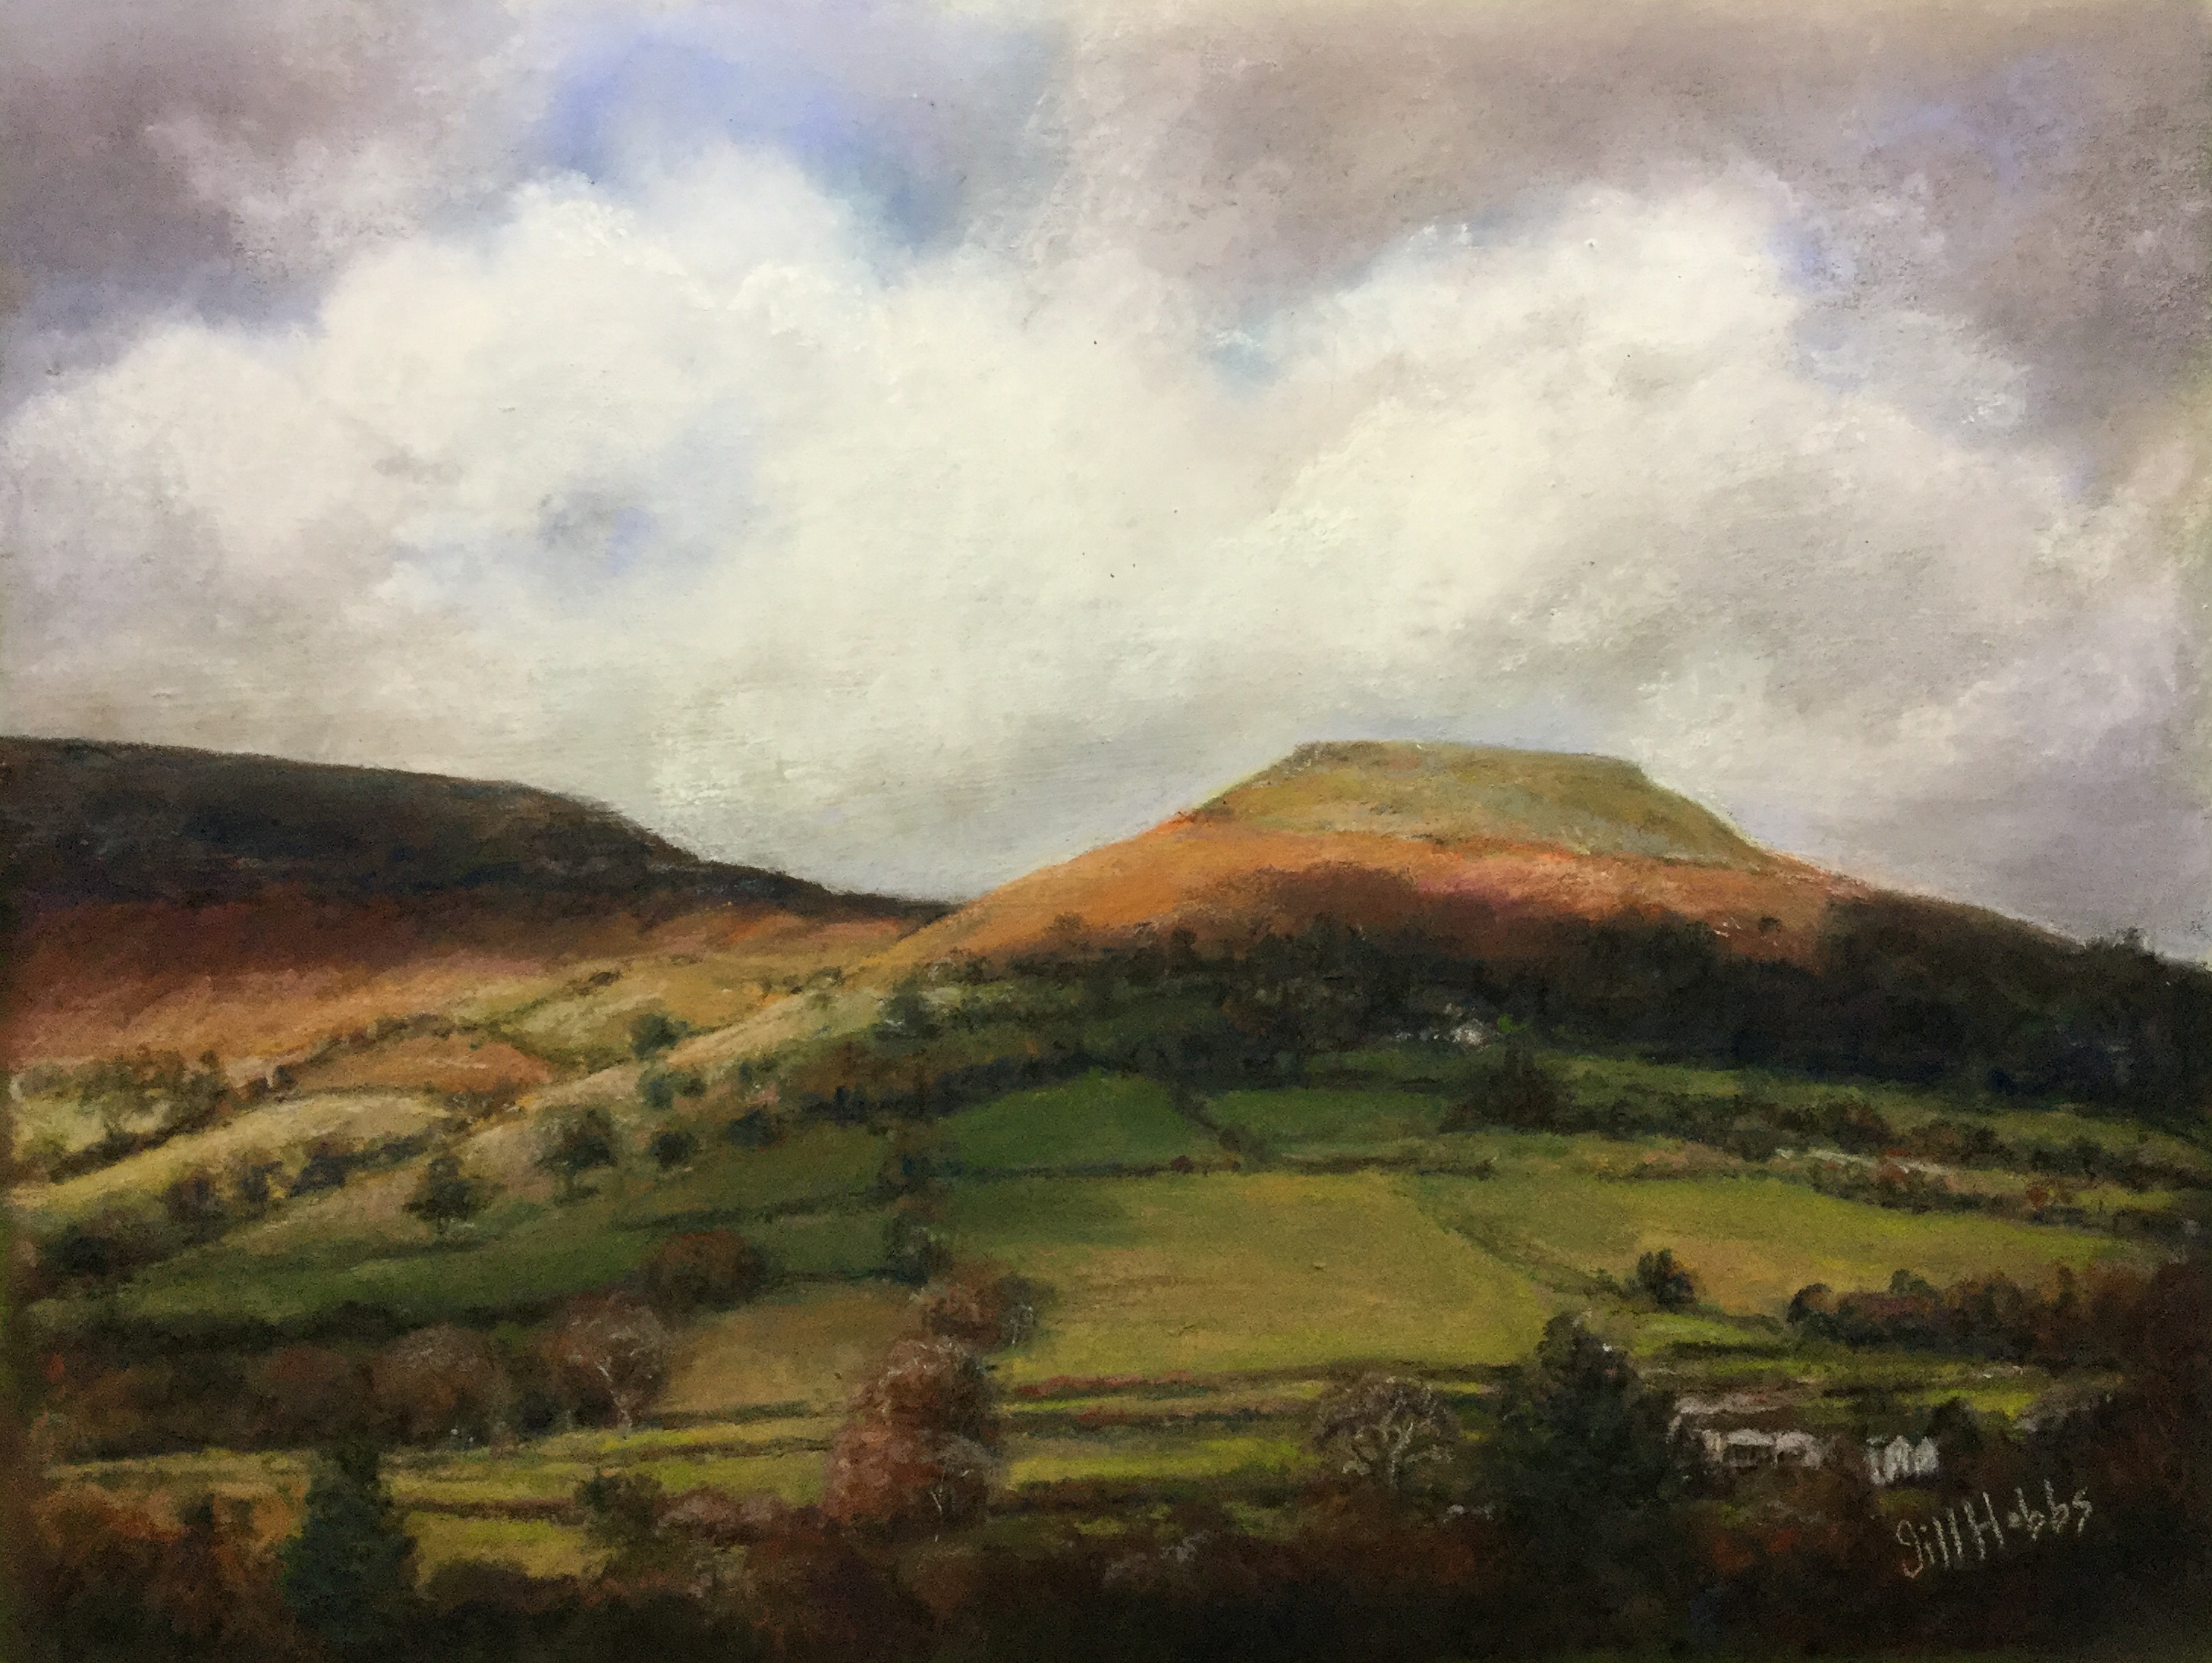 Crug Howel, Table mountain, Crickhowell